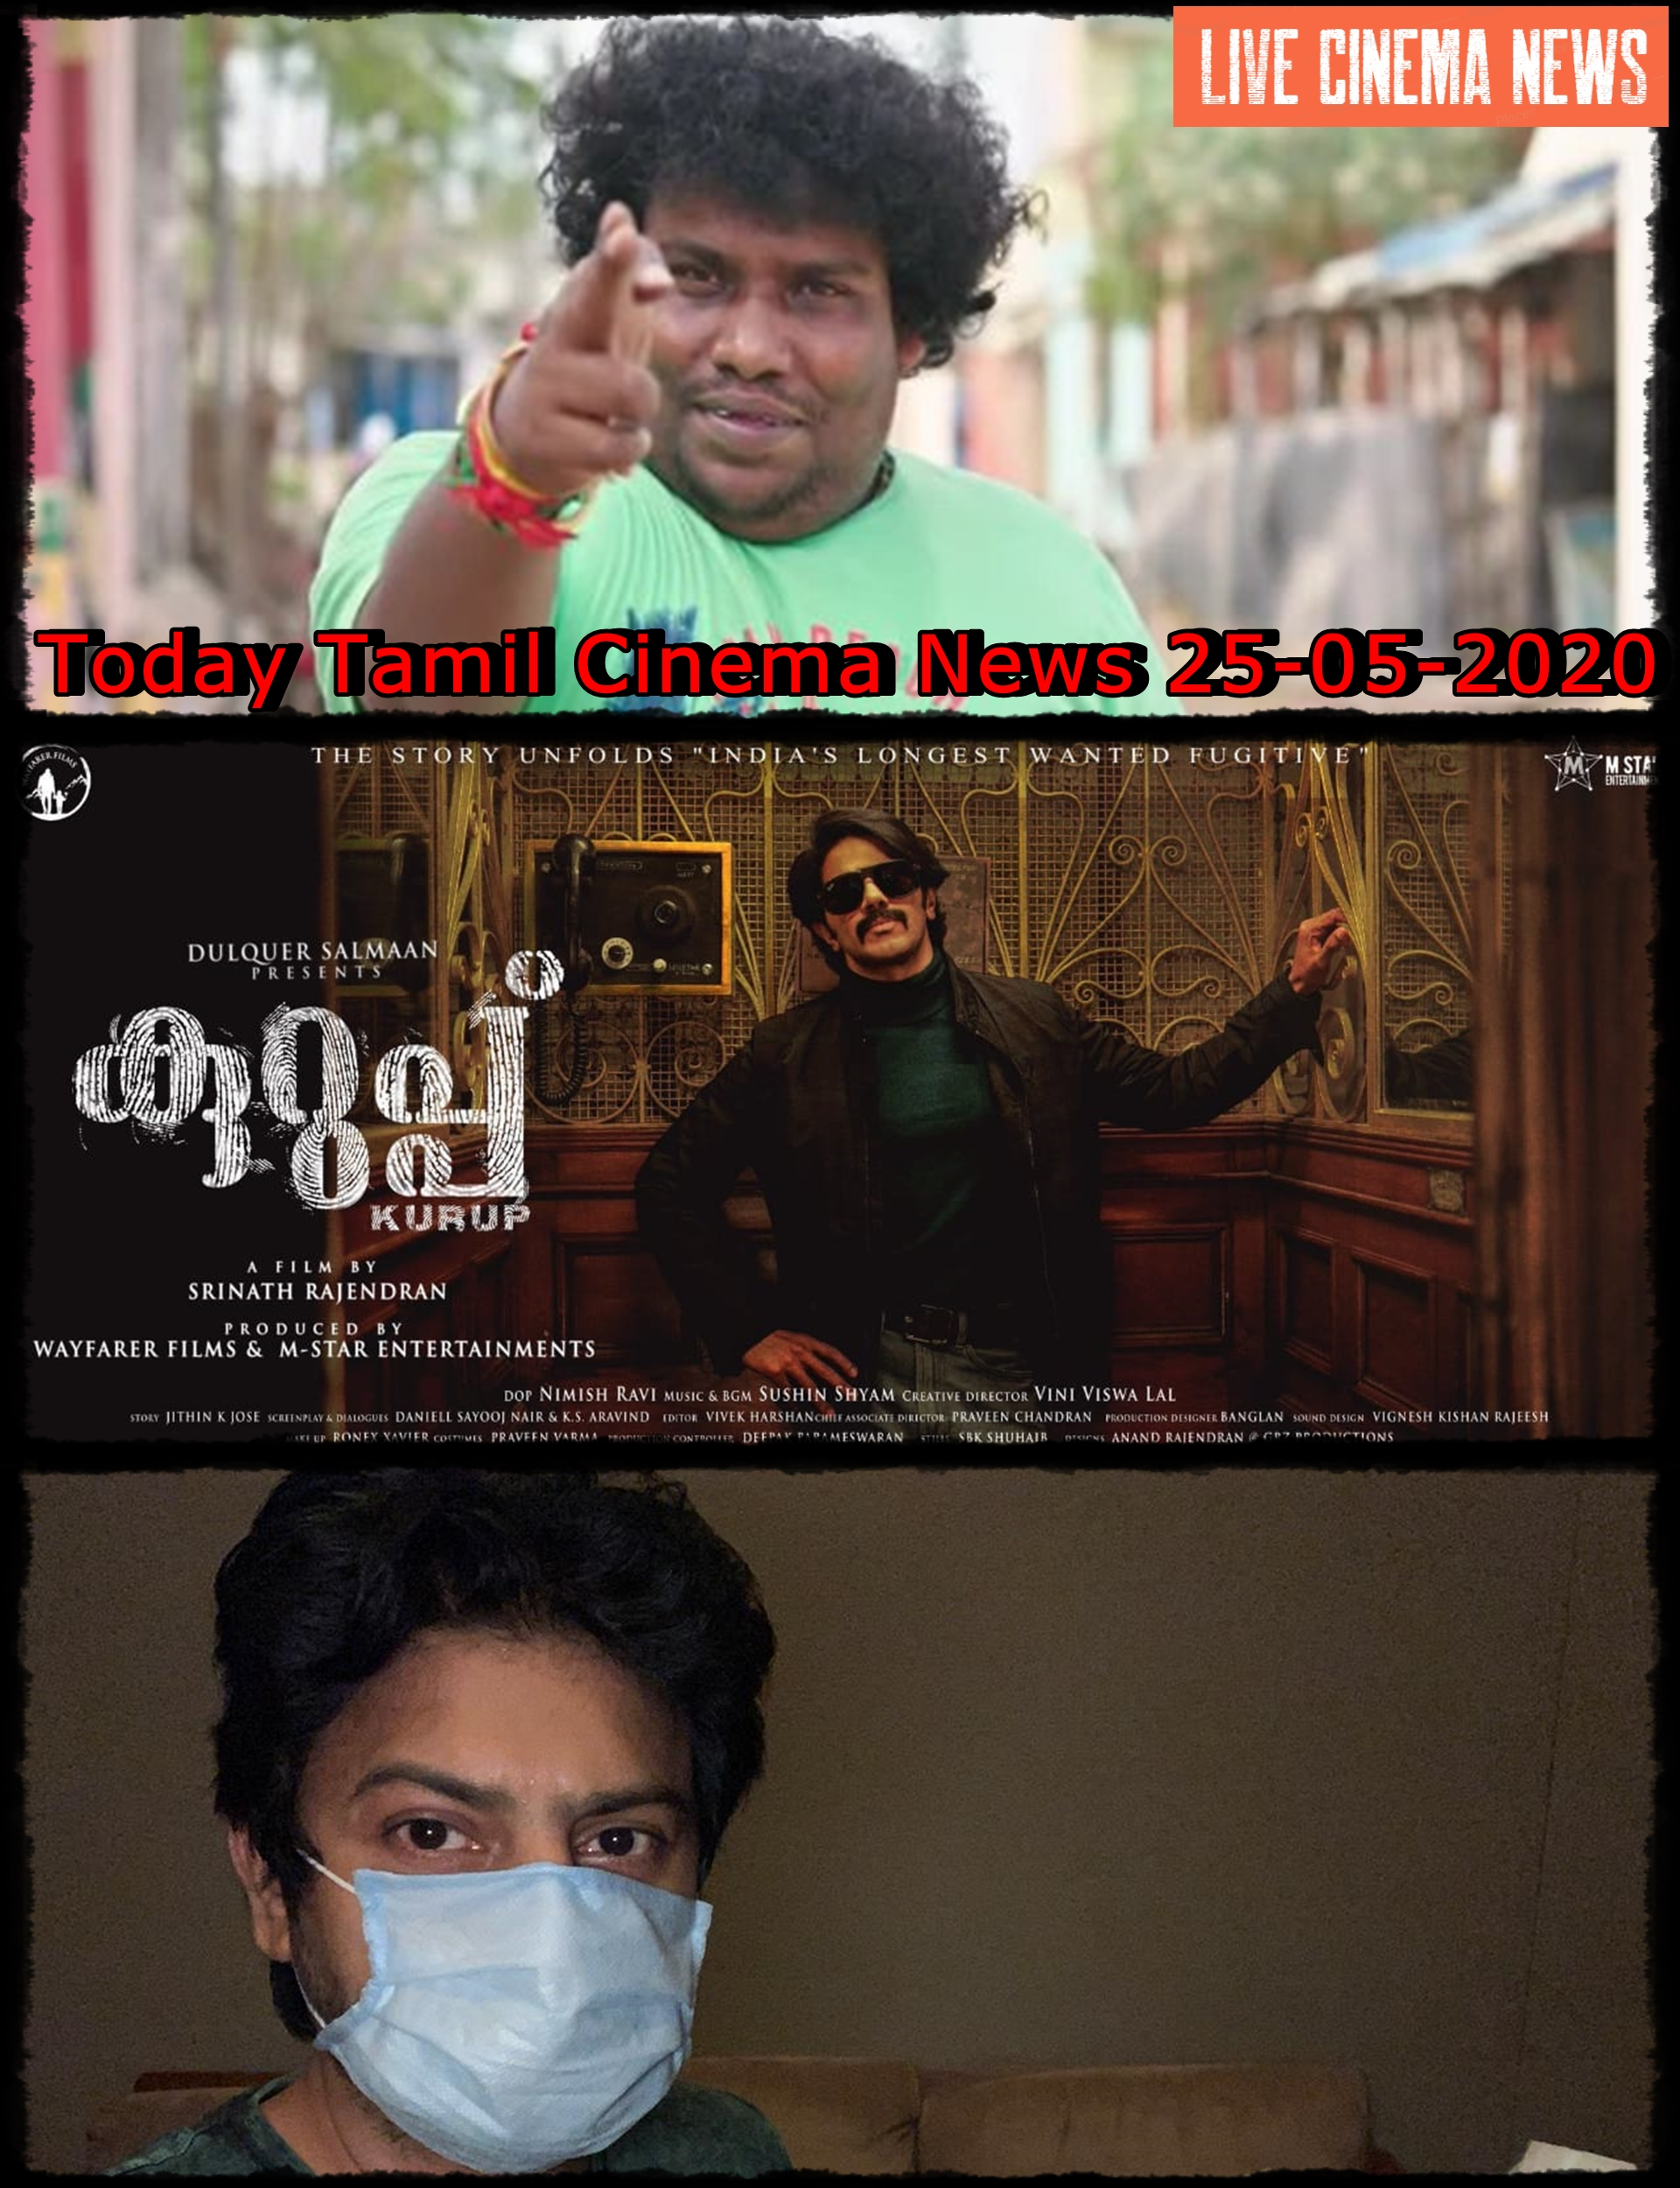 Today Tamil Cinema News 25-05-2020